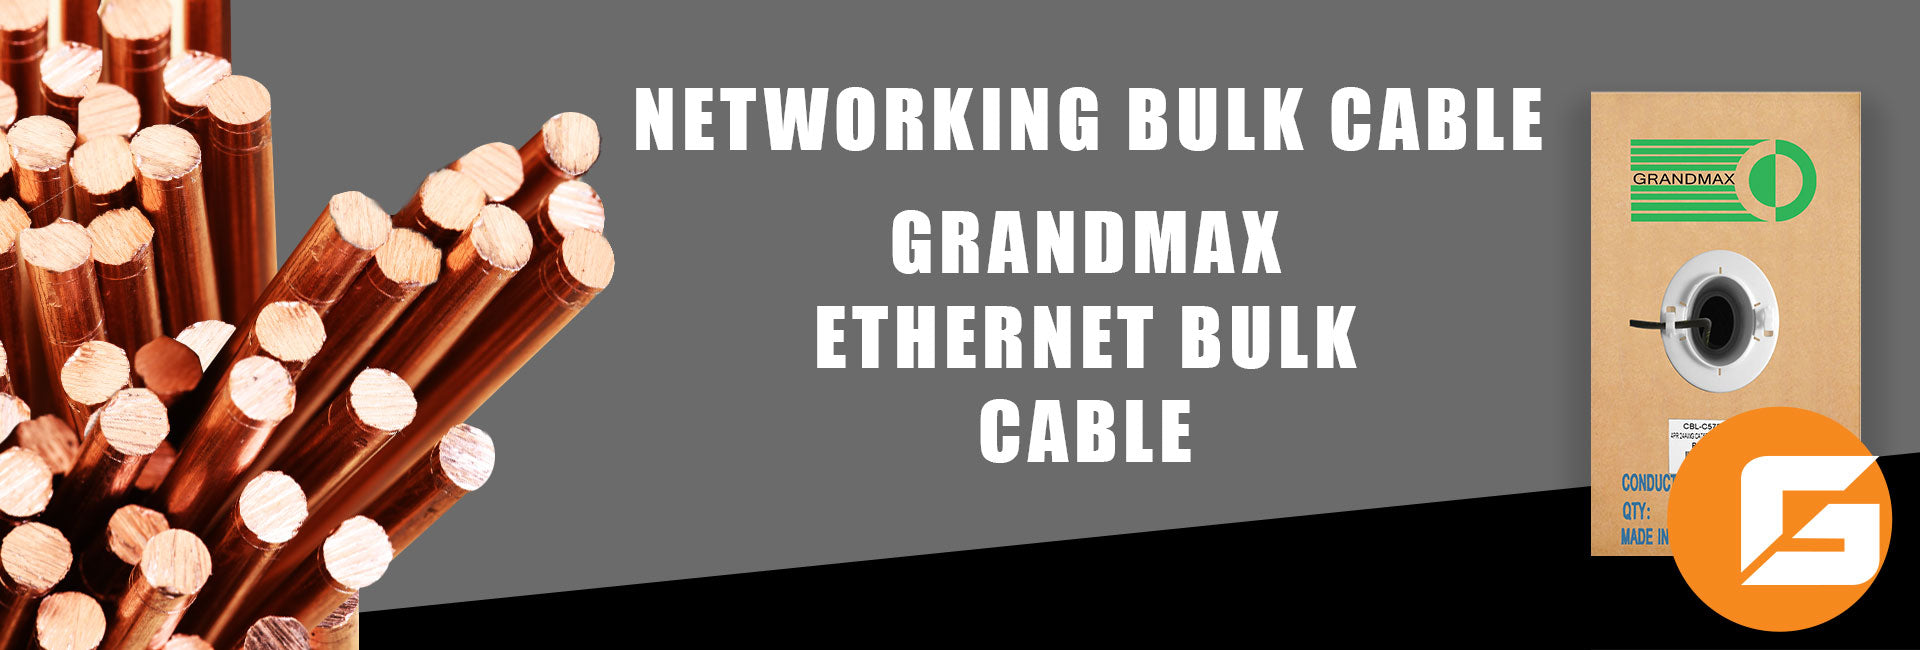 Networking Bulk Cable